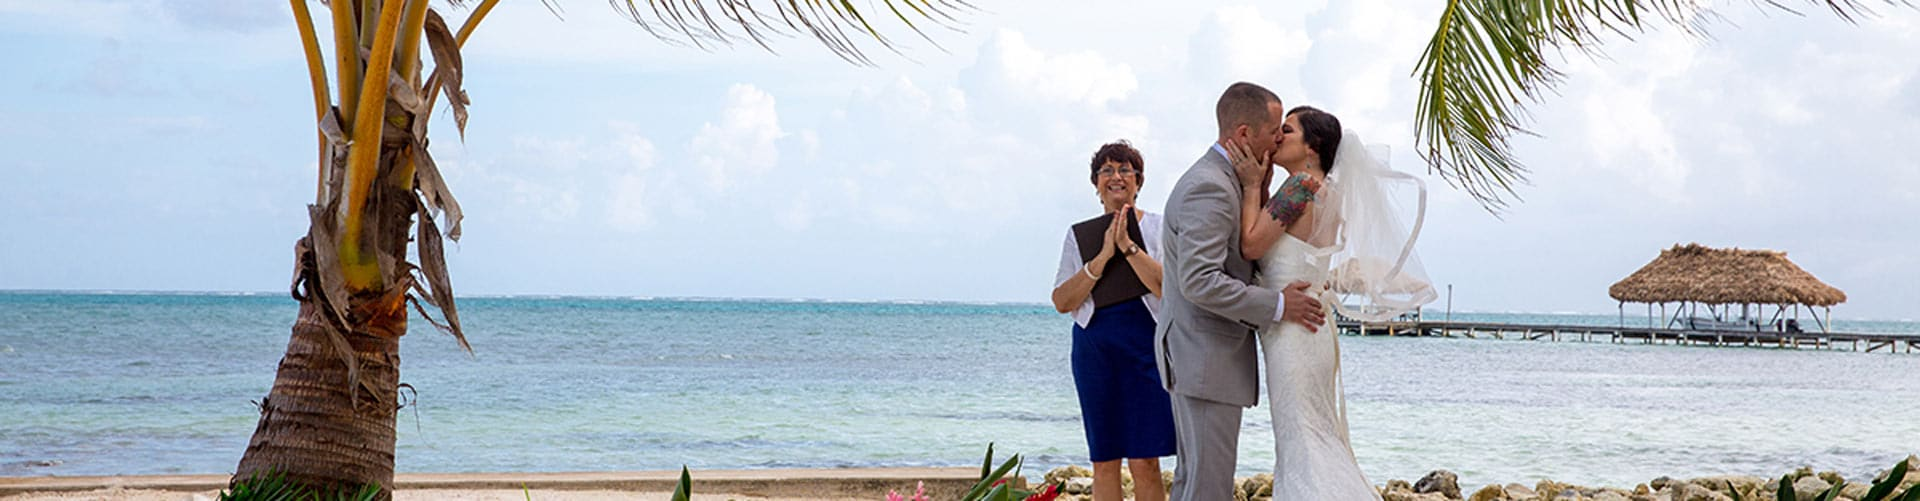 Ambergris Caye, Belize Elopement Package